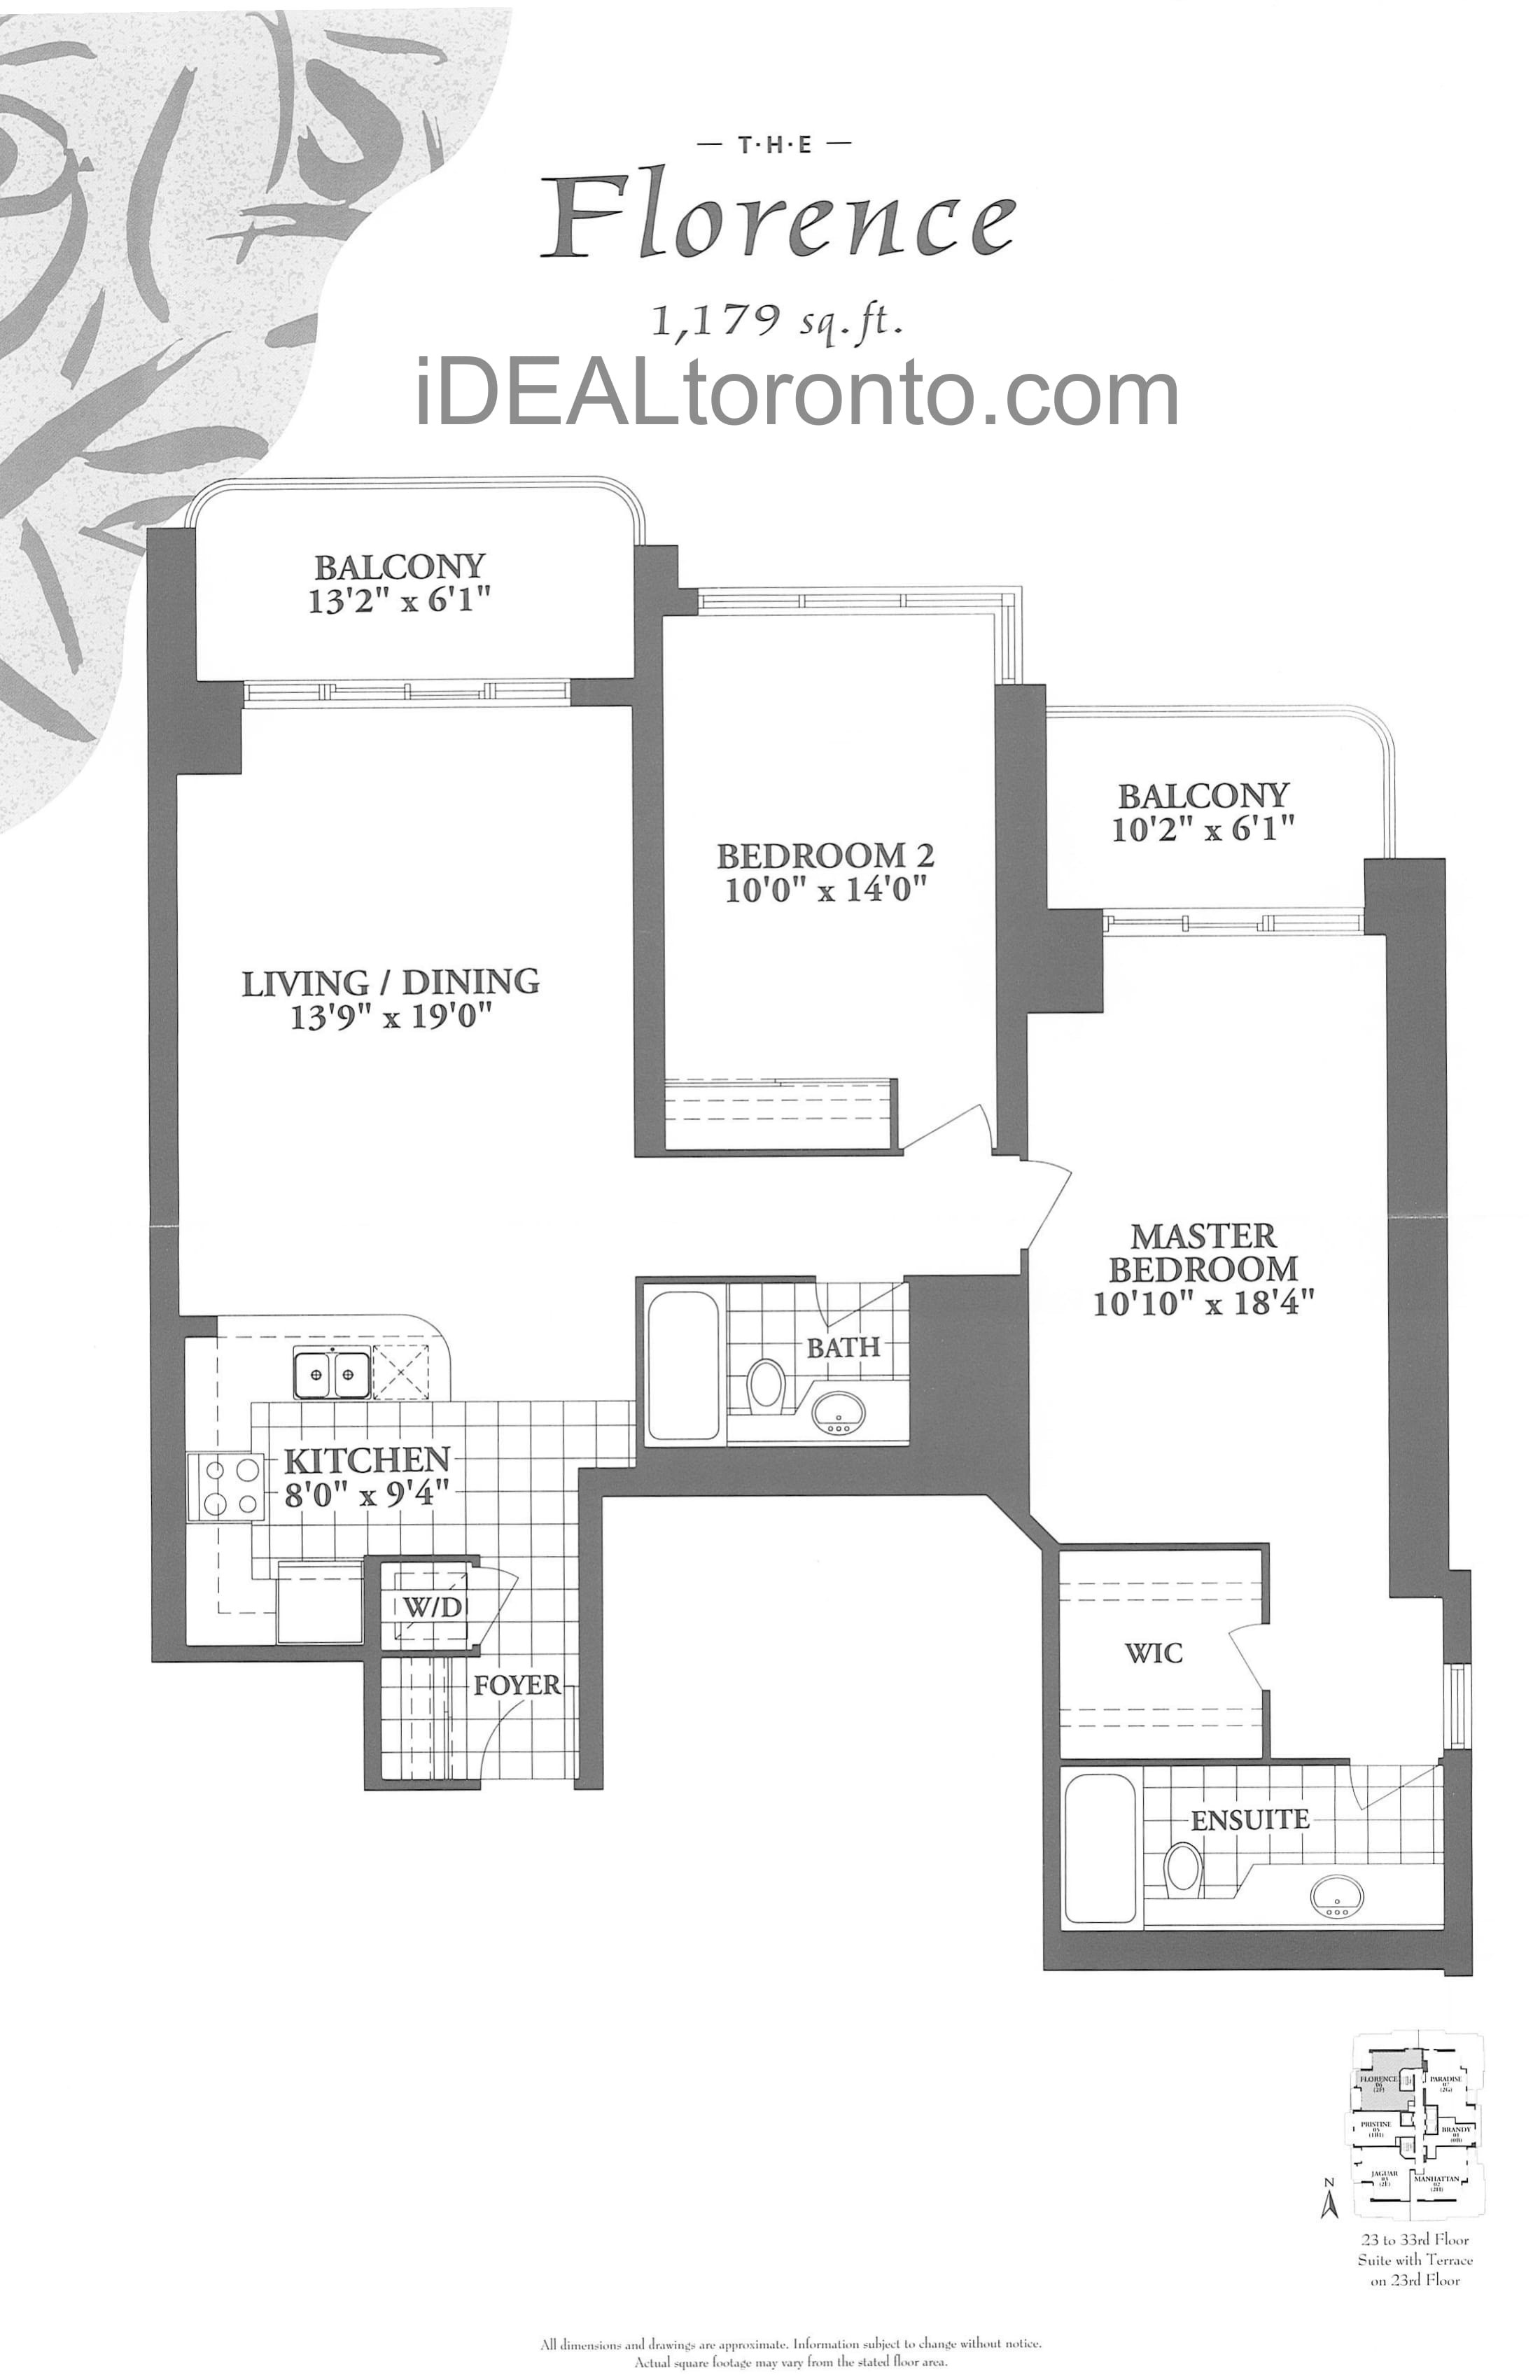 The Florence: 2 Bedroom, 1,179 SqFt